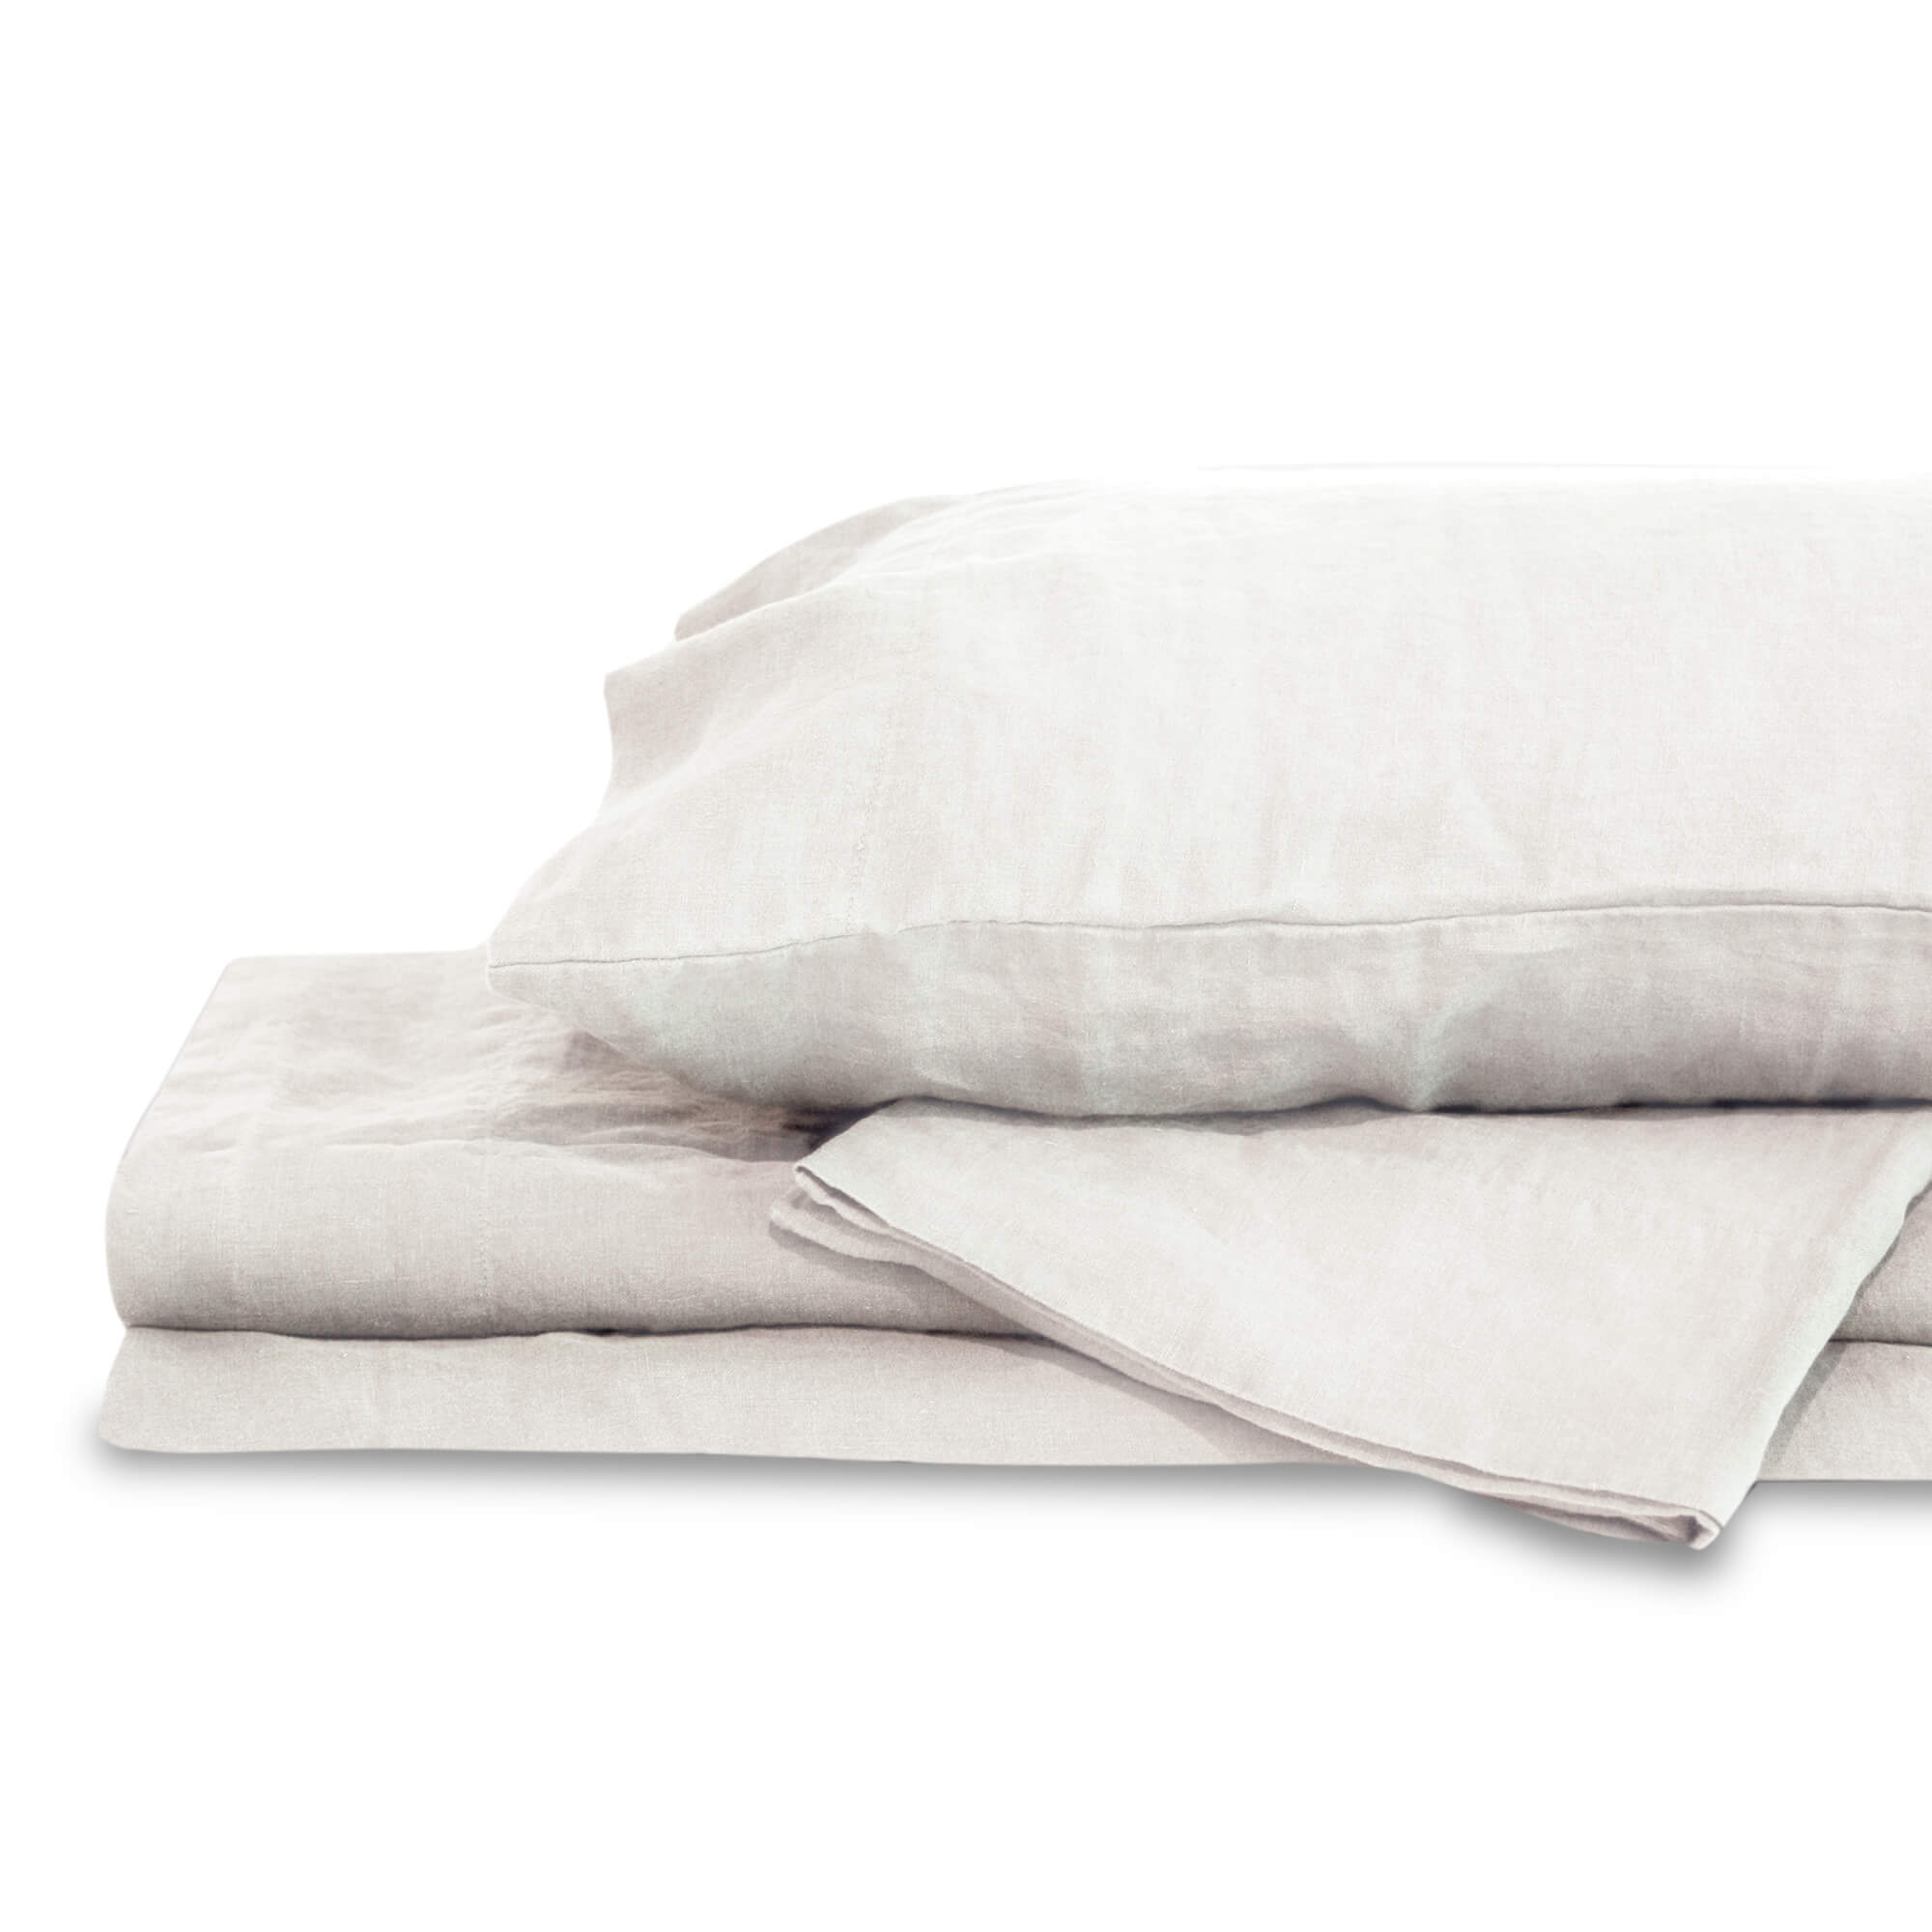 Delilah Home 100% Hemp Bed Sheets